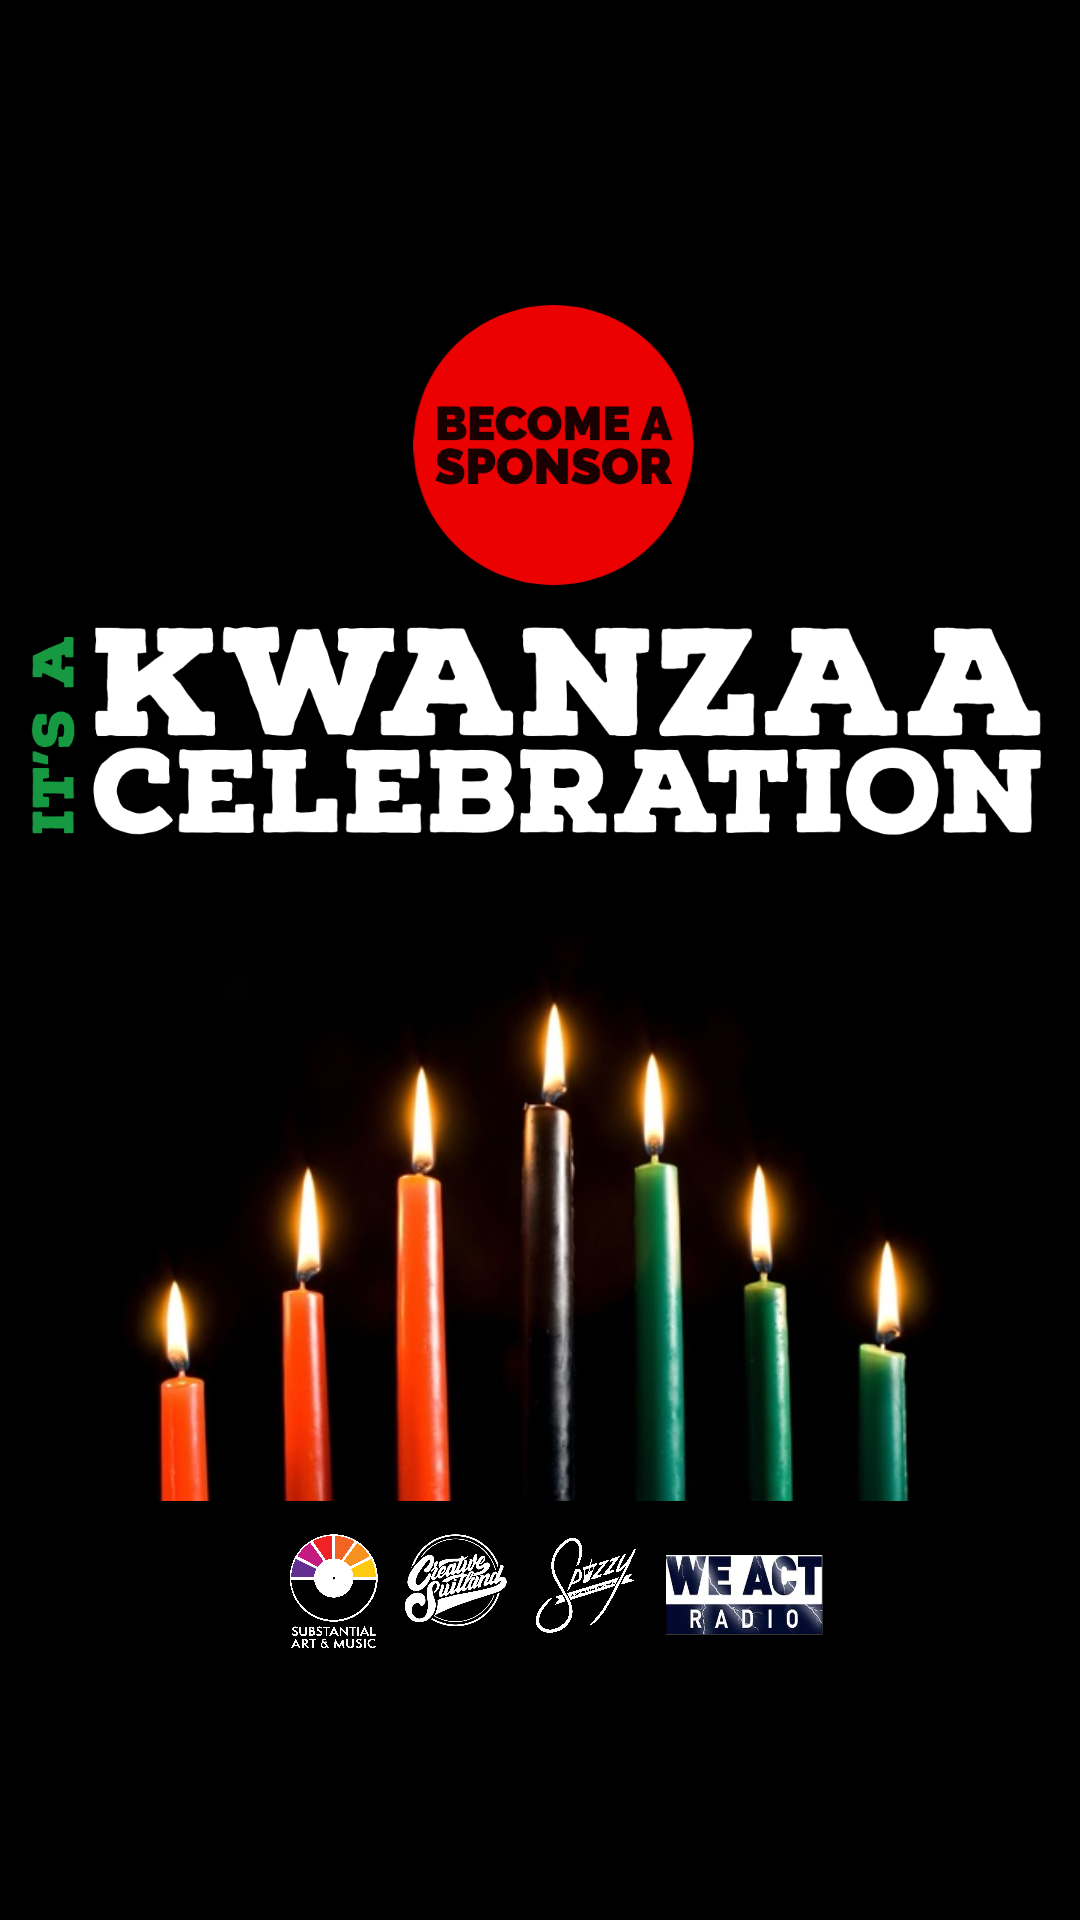 PG County Arts Center Brings Kwanzaa to Homes Across the DMV